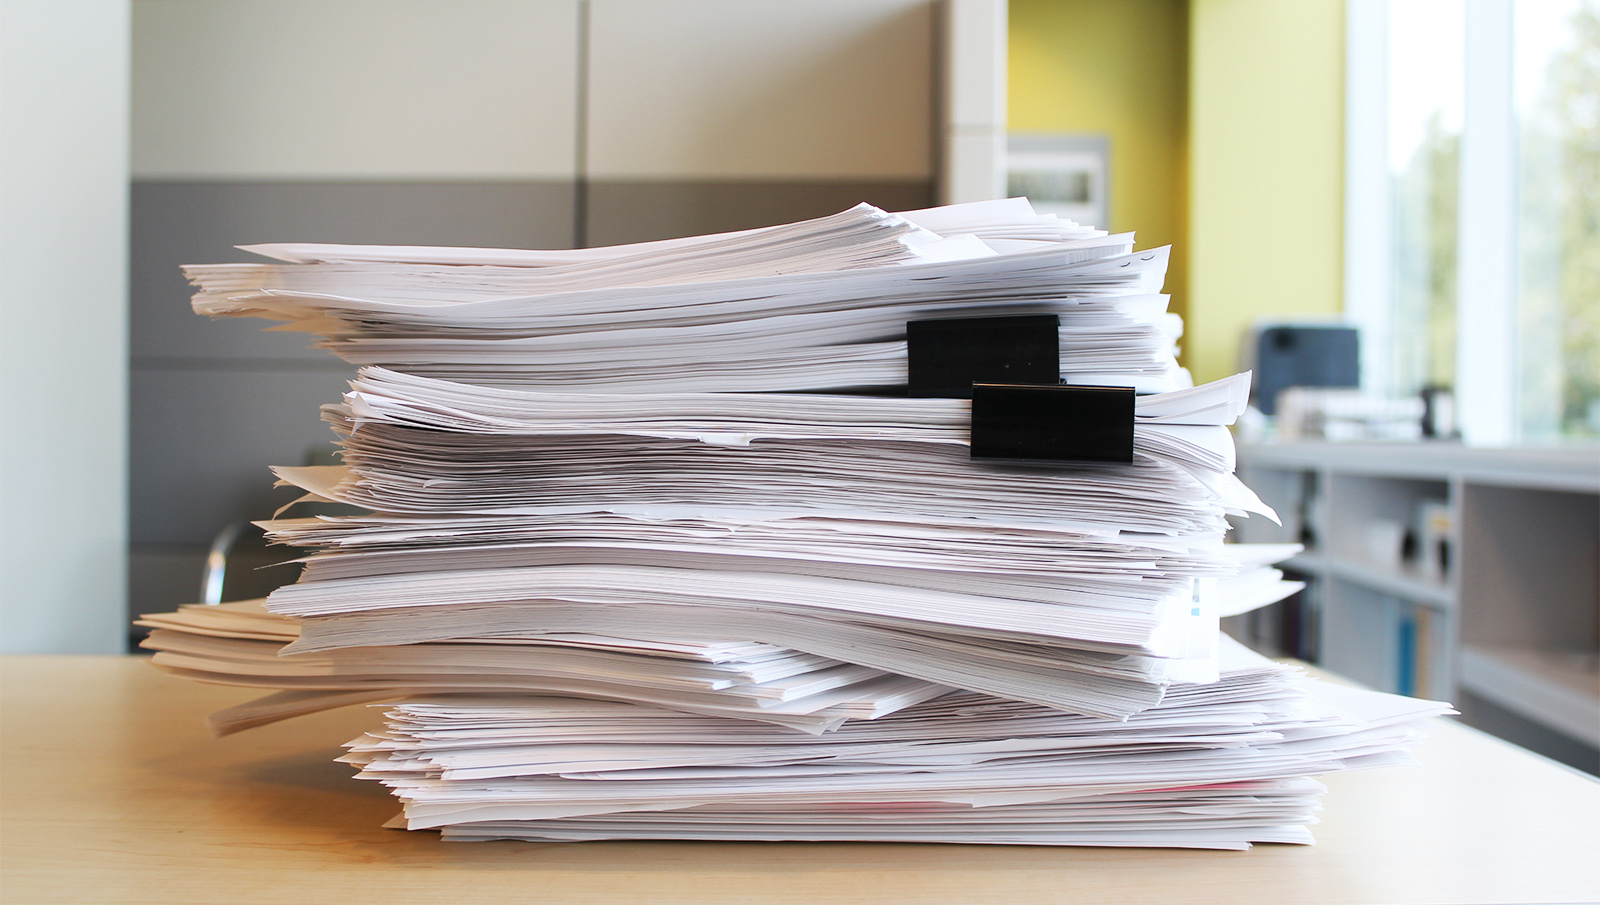 A stack of white papers for editing.